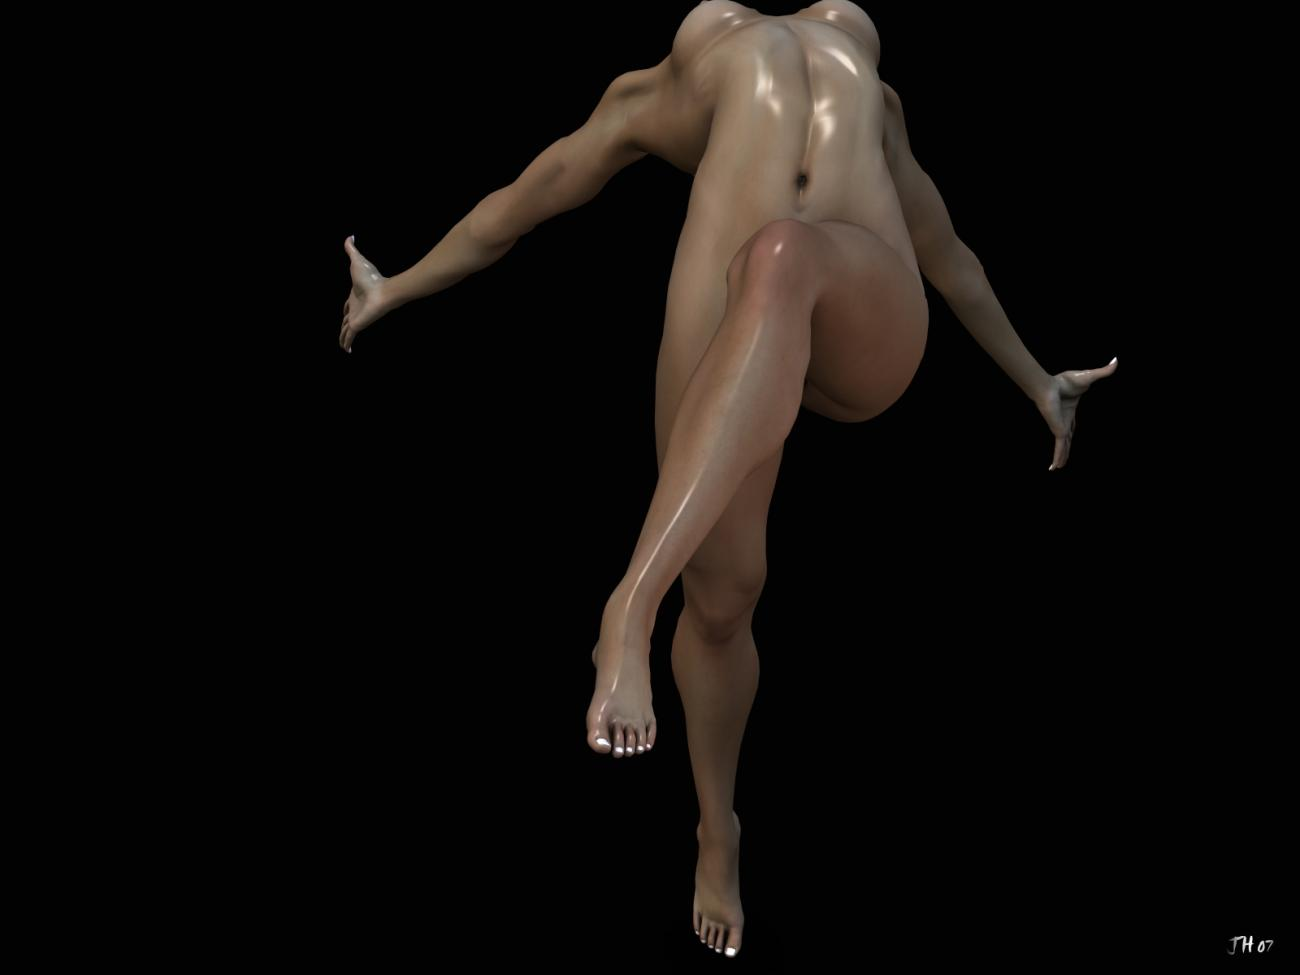 The Female Form (Very mild nudity)